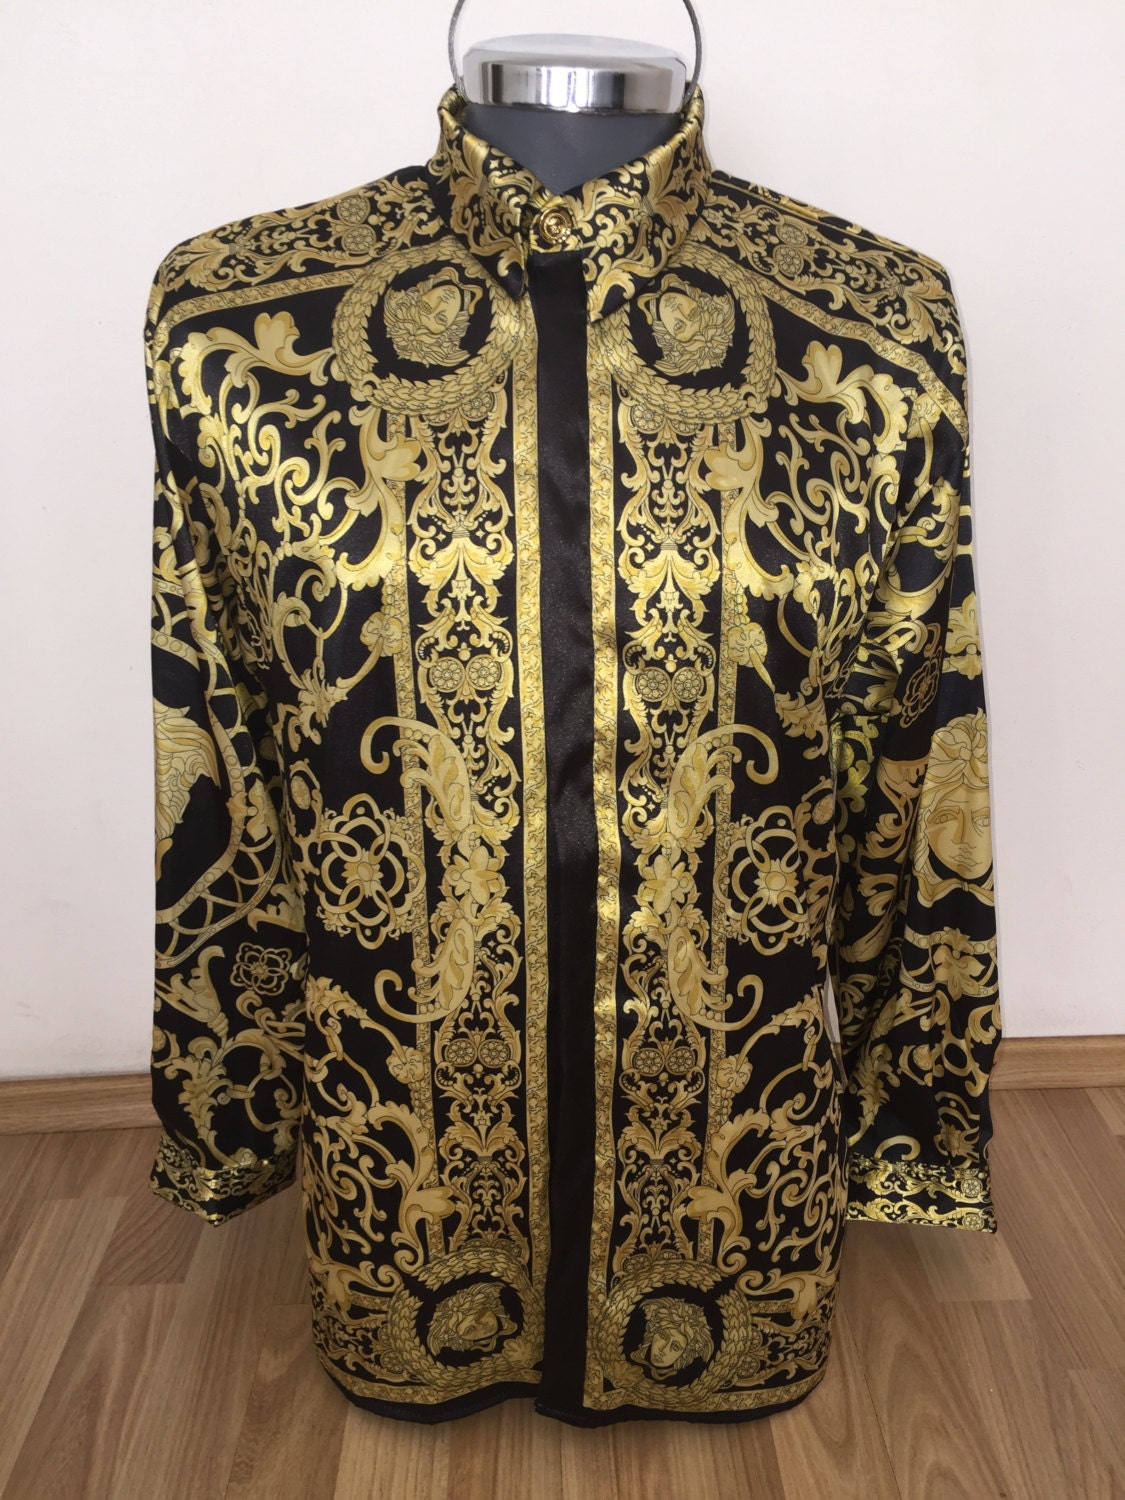 gianni versace silk shirt hermes silk shirt by silkbarrococouture. Black Bedroom Furniture Sets. Home Design Ideas